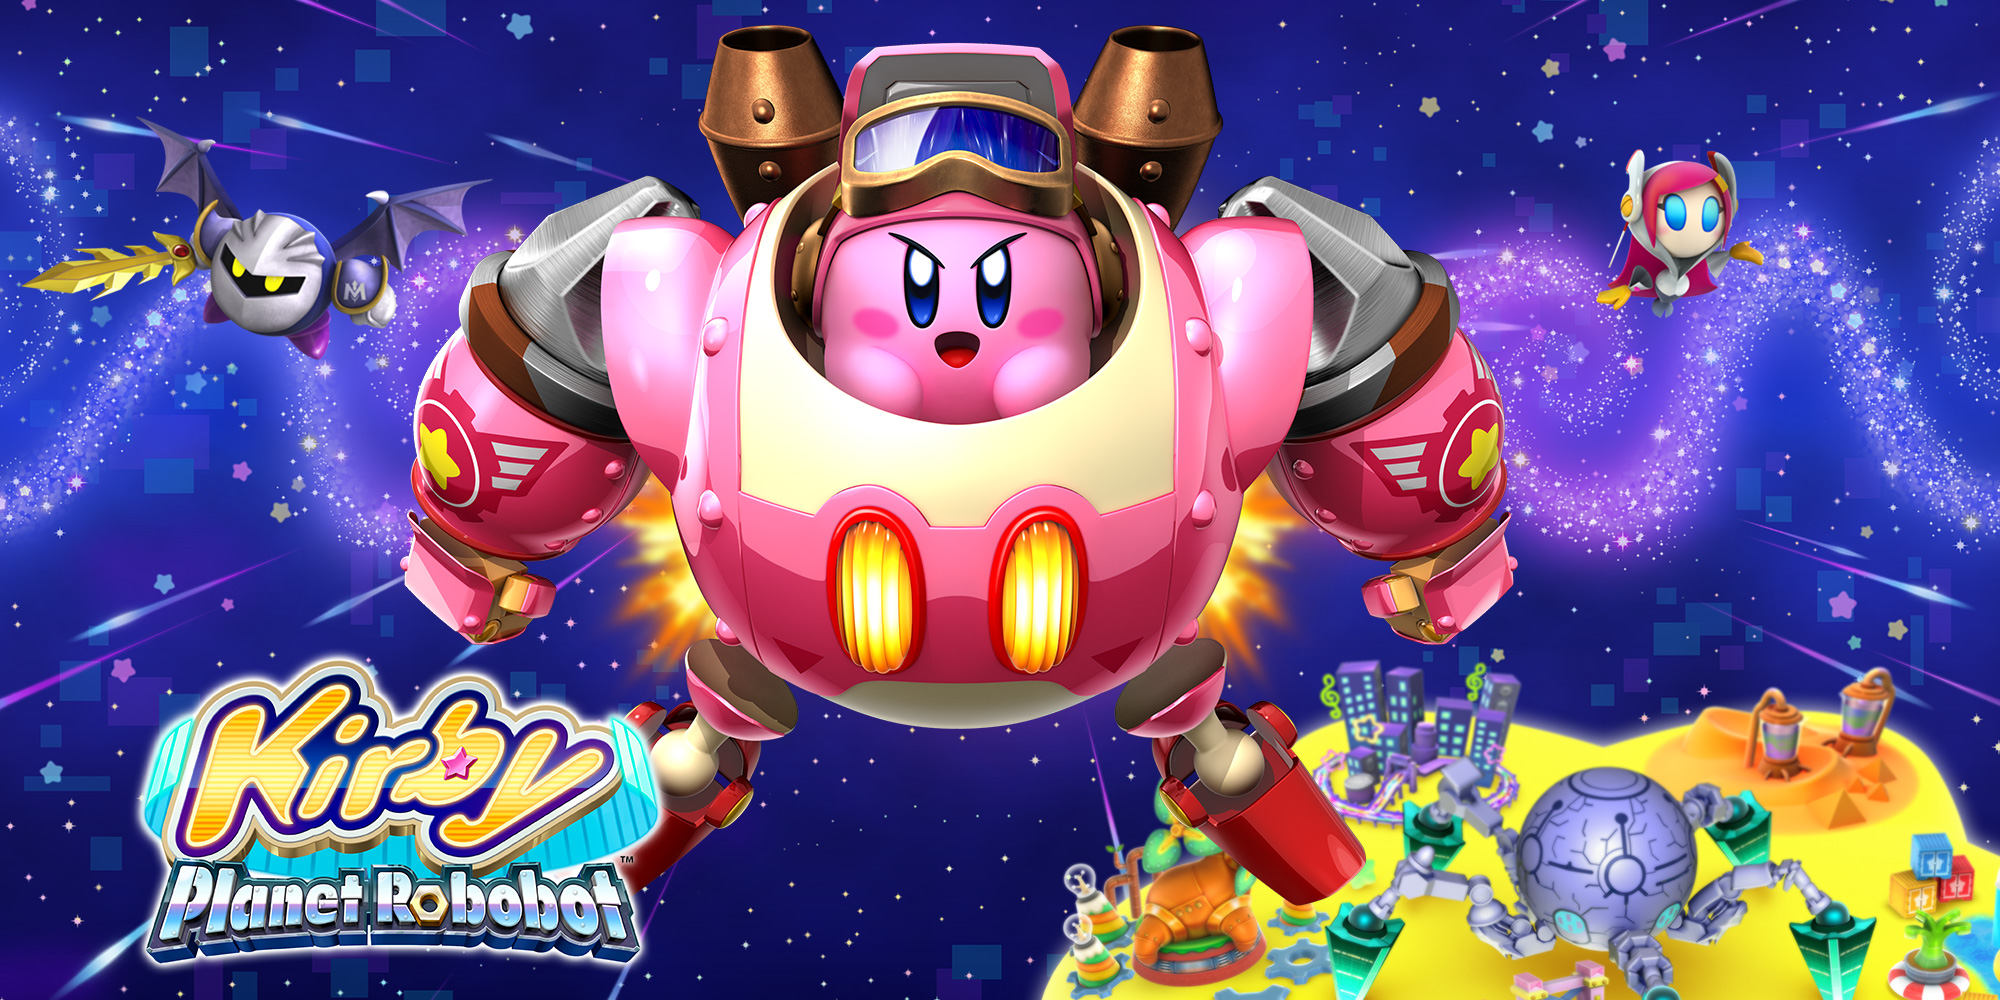 Save Planet Popstar From A Robotic Army When Kirby Planet